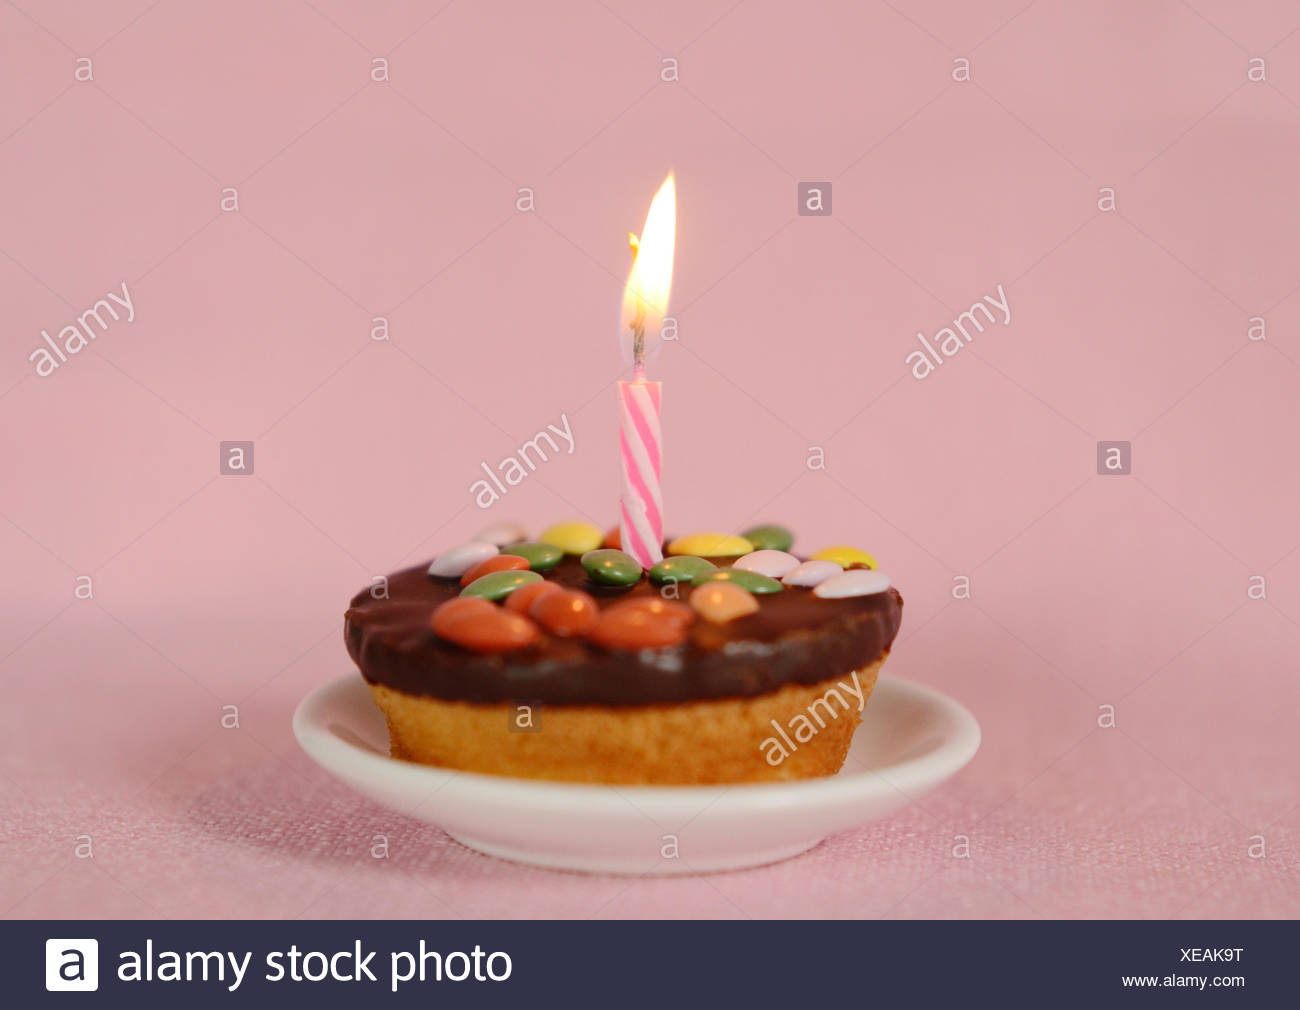 Candle Ornament Birthday Cake Muffin Detail Pie Cakes Decoration Flame